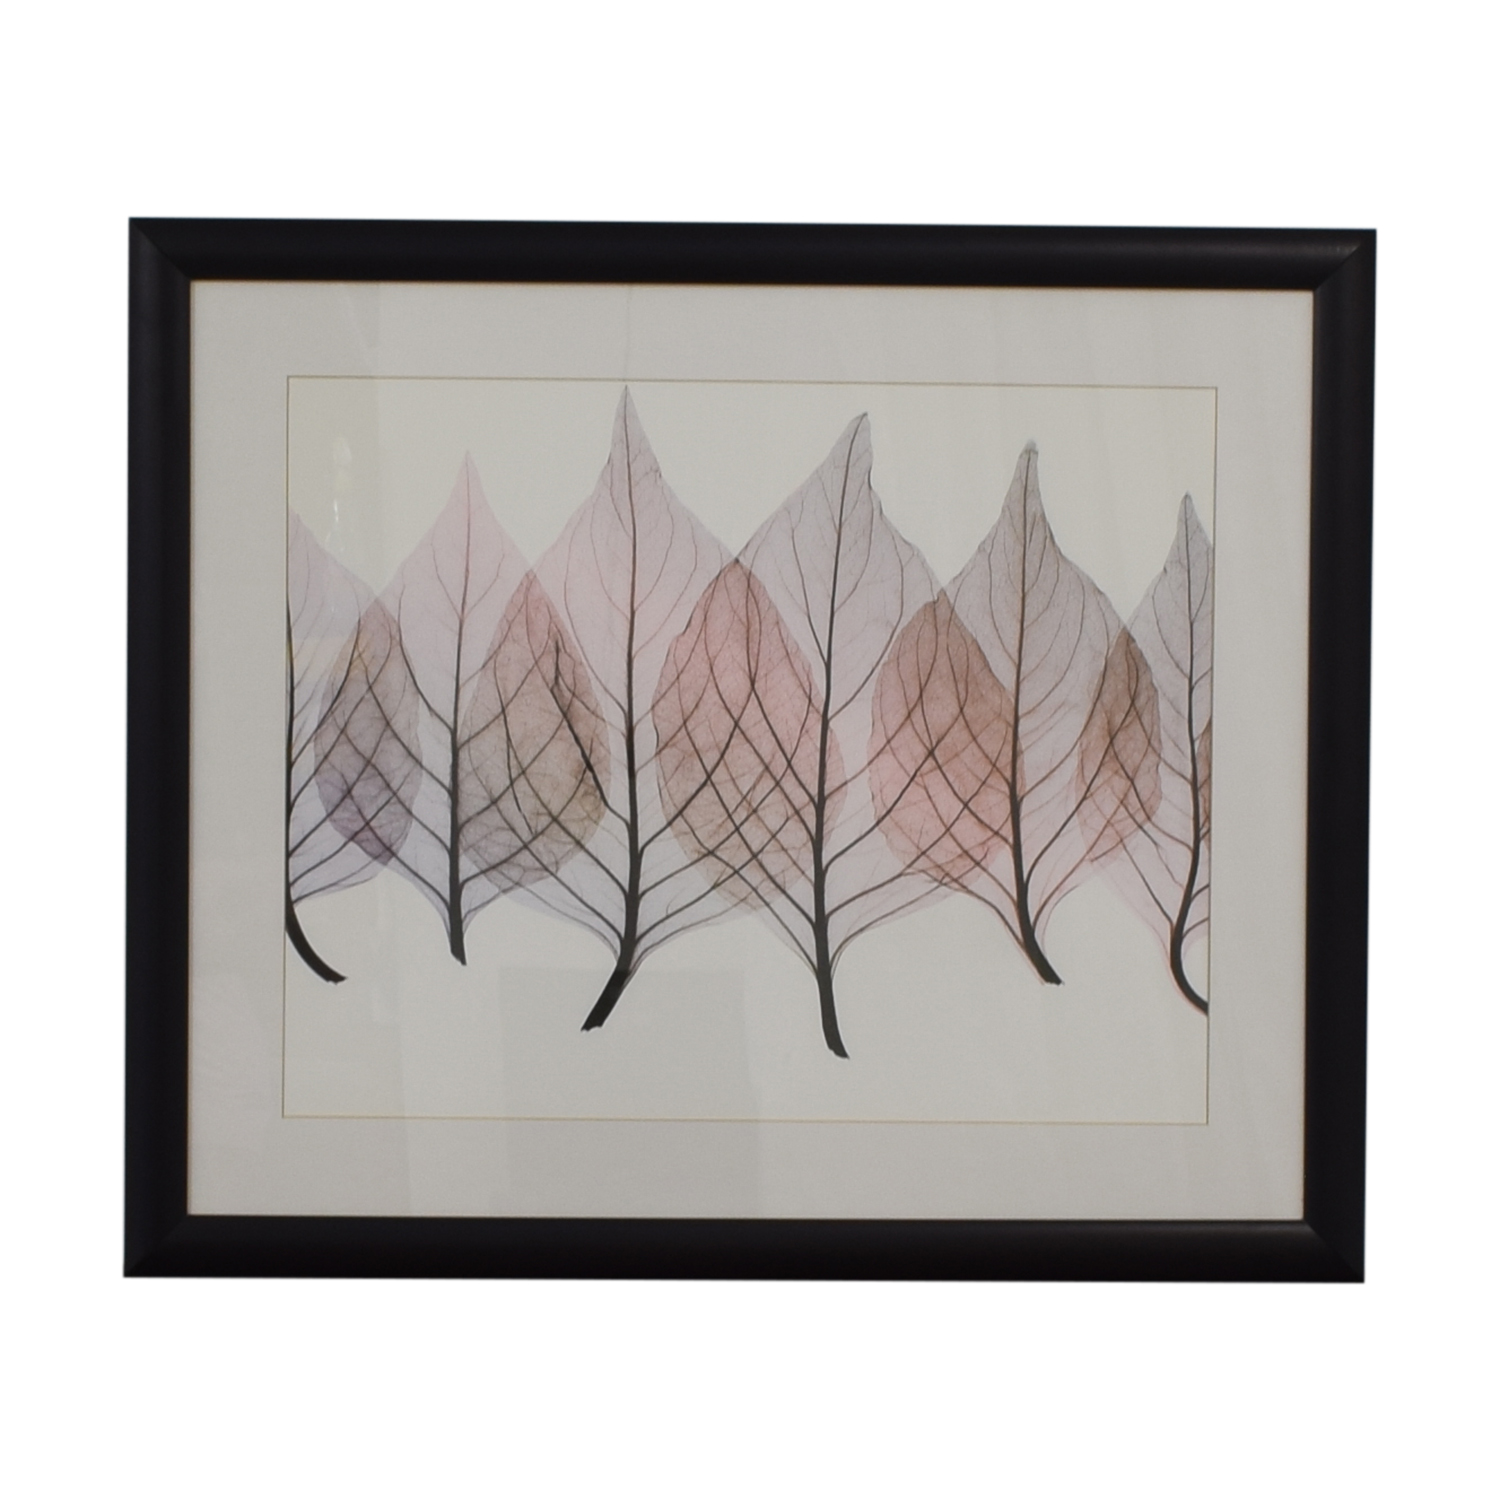 Framed Leaf Print Decor